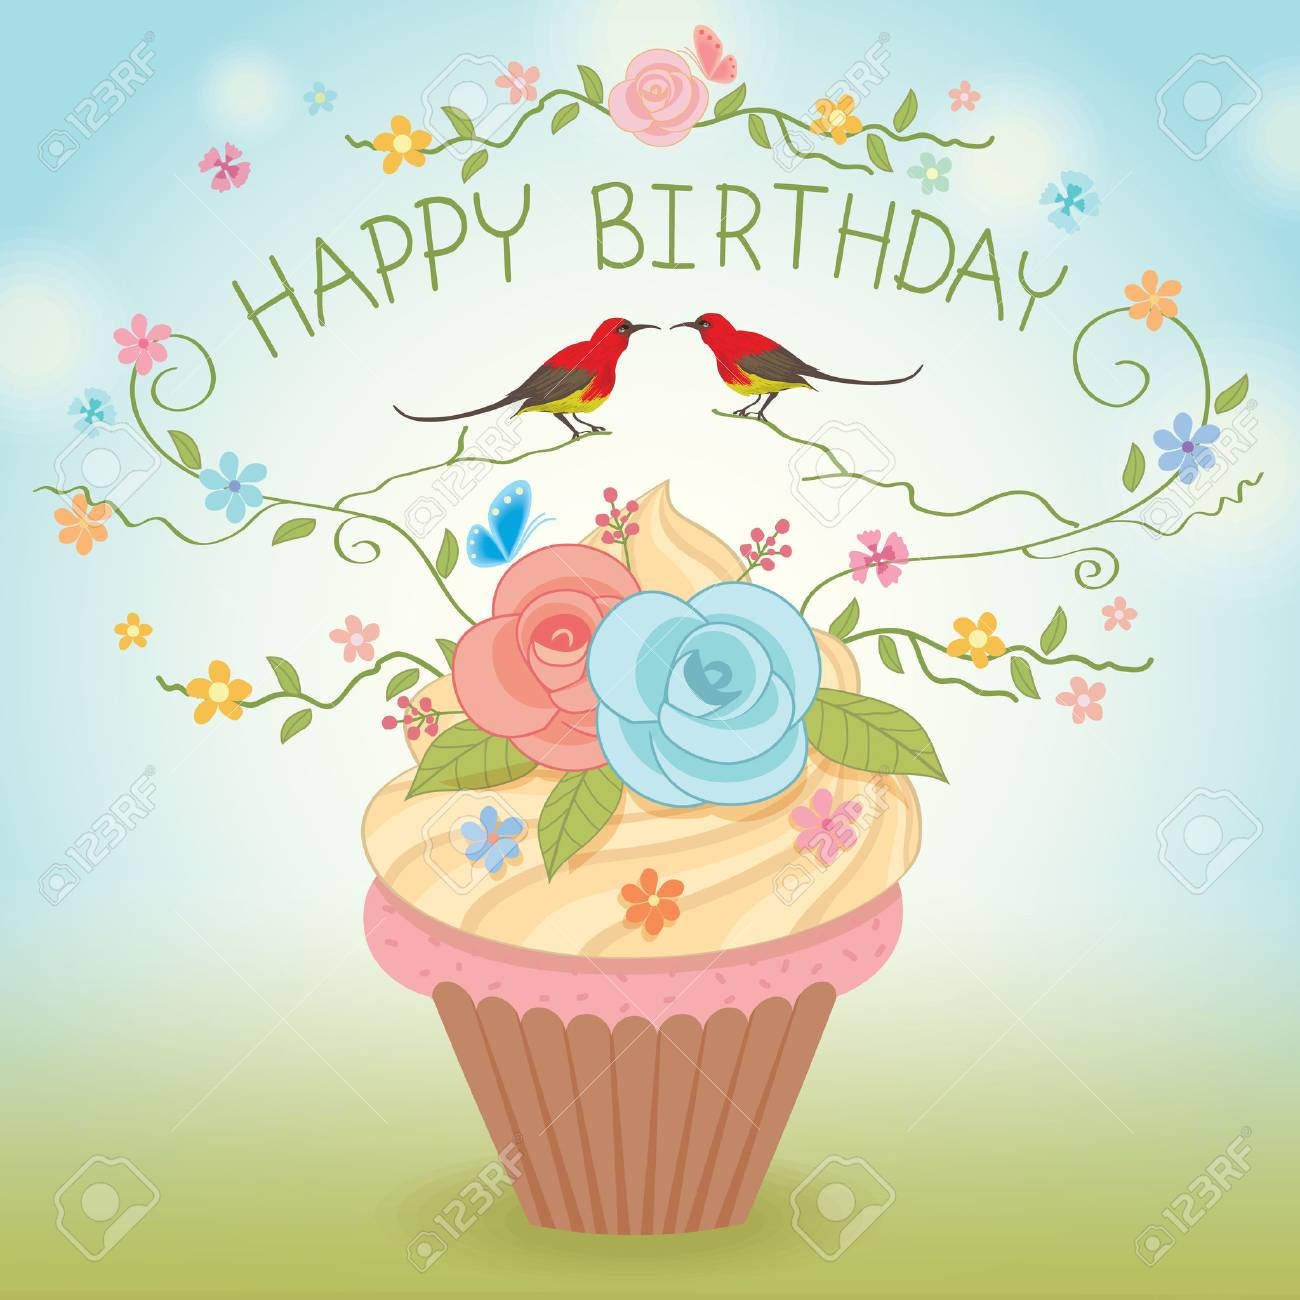 Sweet Vector Cupcake Decoration With Flowers And Couple Birds For Happy Birthday CardNatrue Background